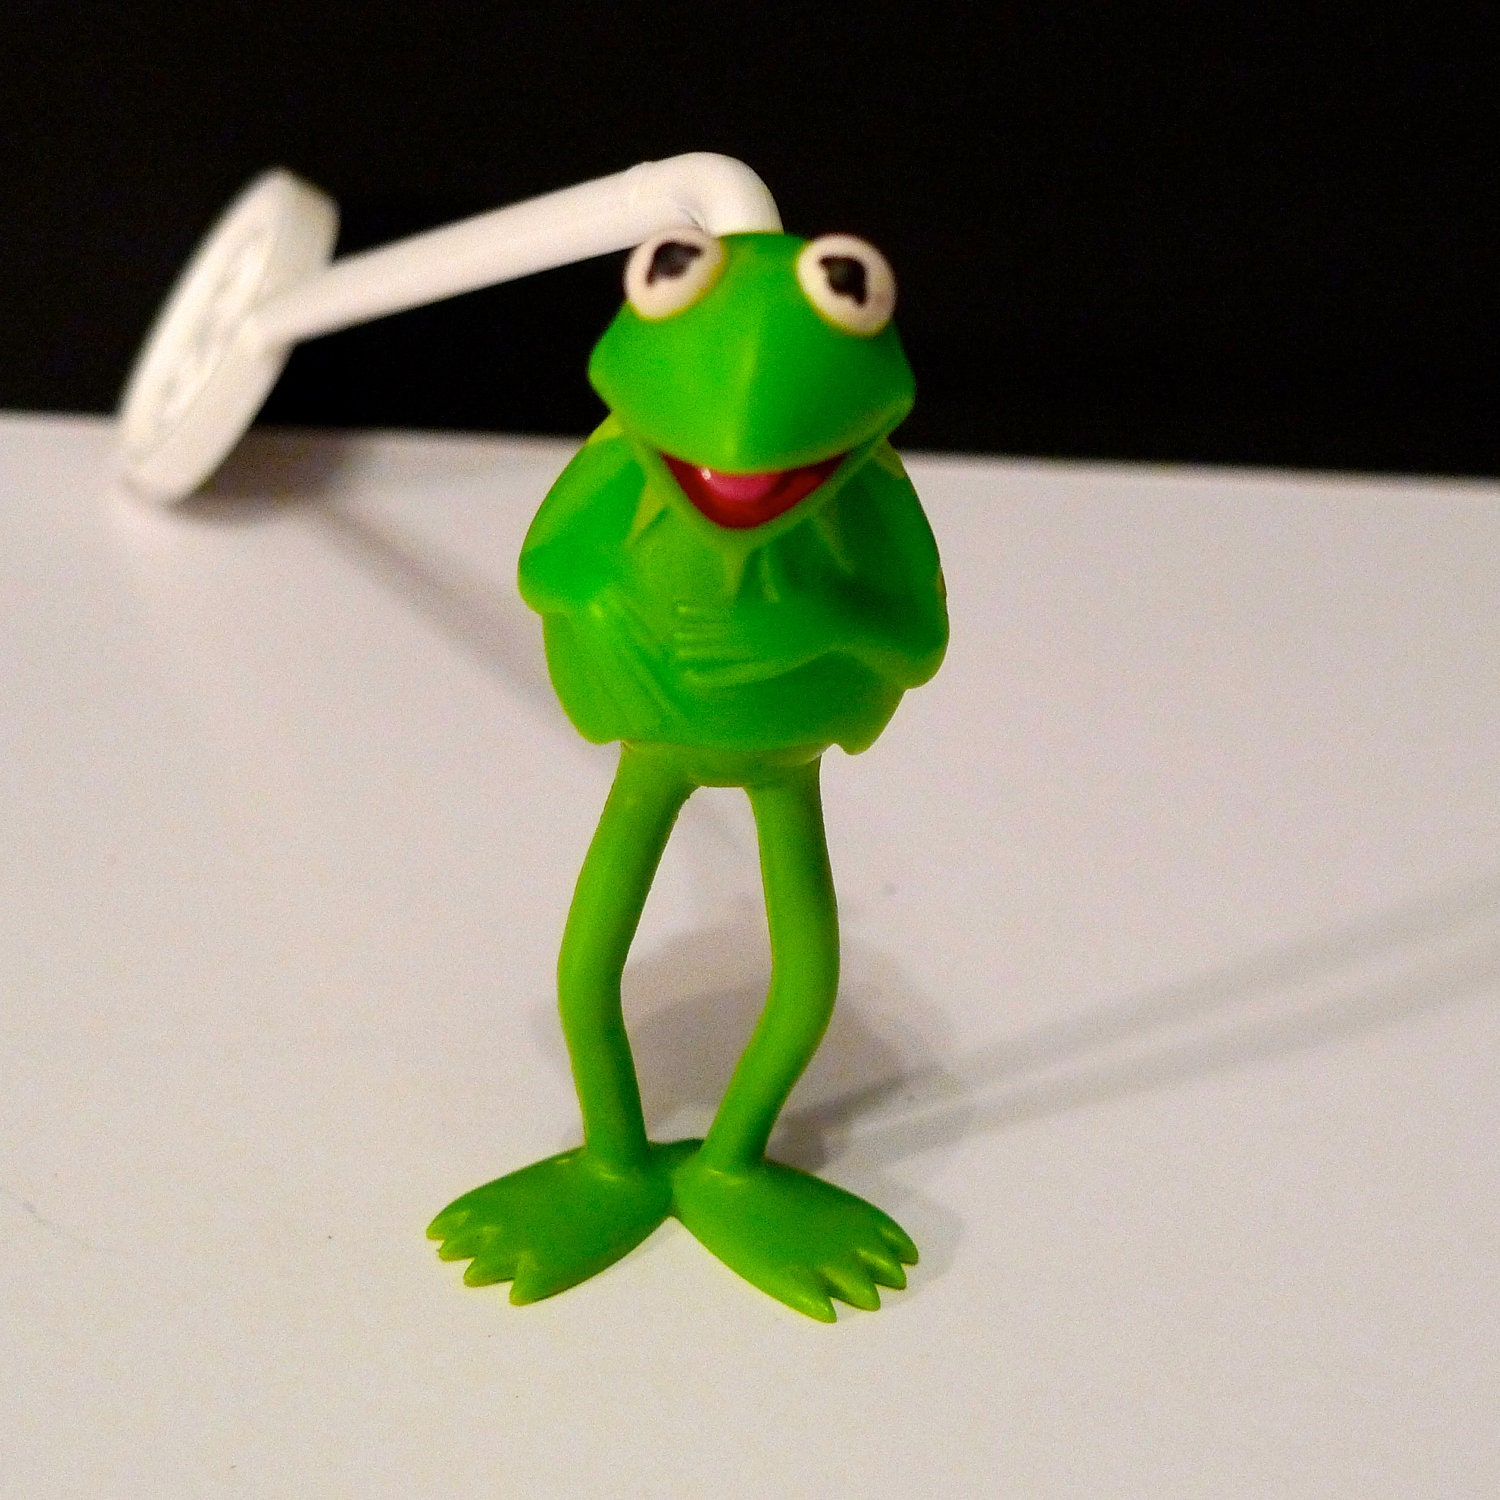 Kermit Puppet Kermit The Frog Stick Puppet Chilrens Toy Action